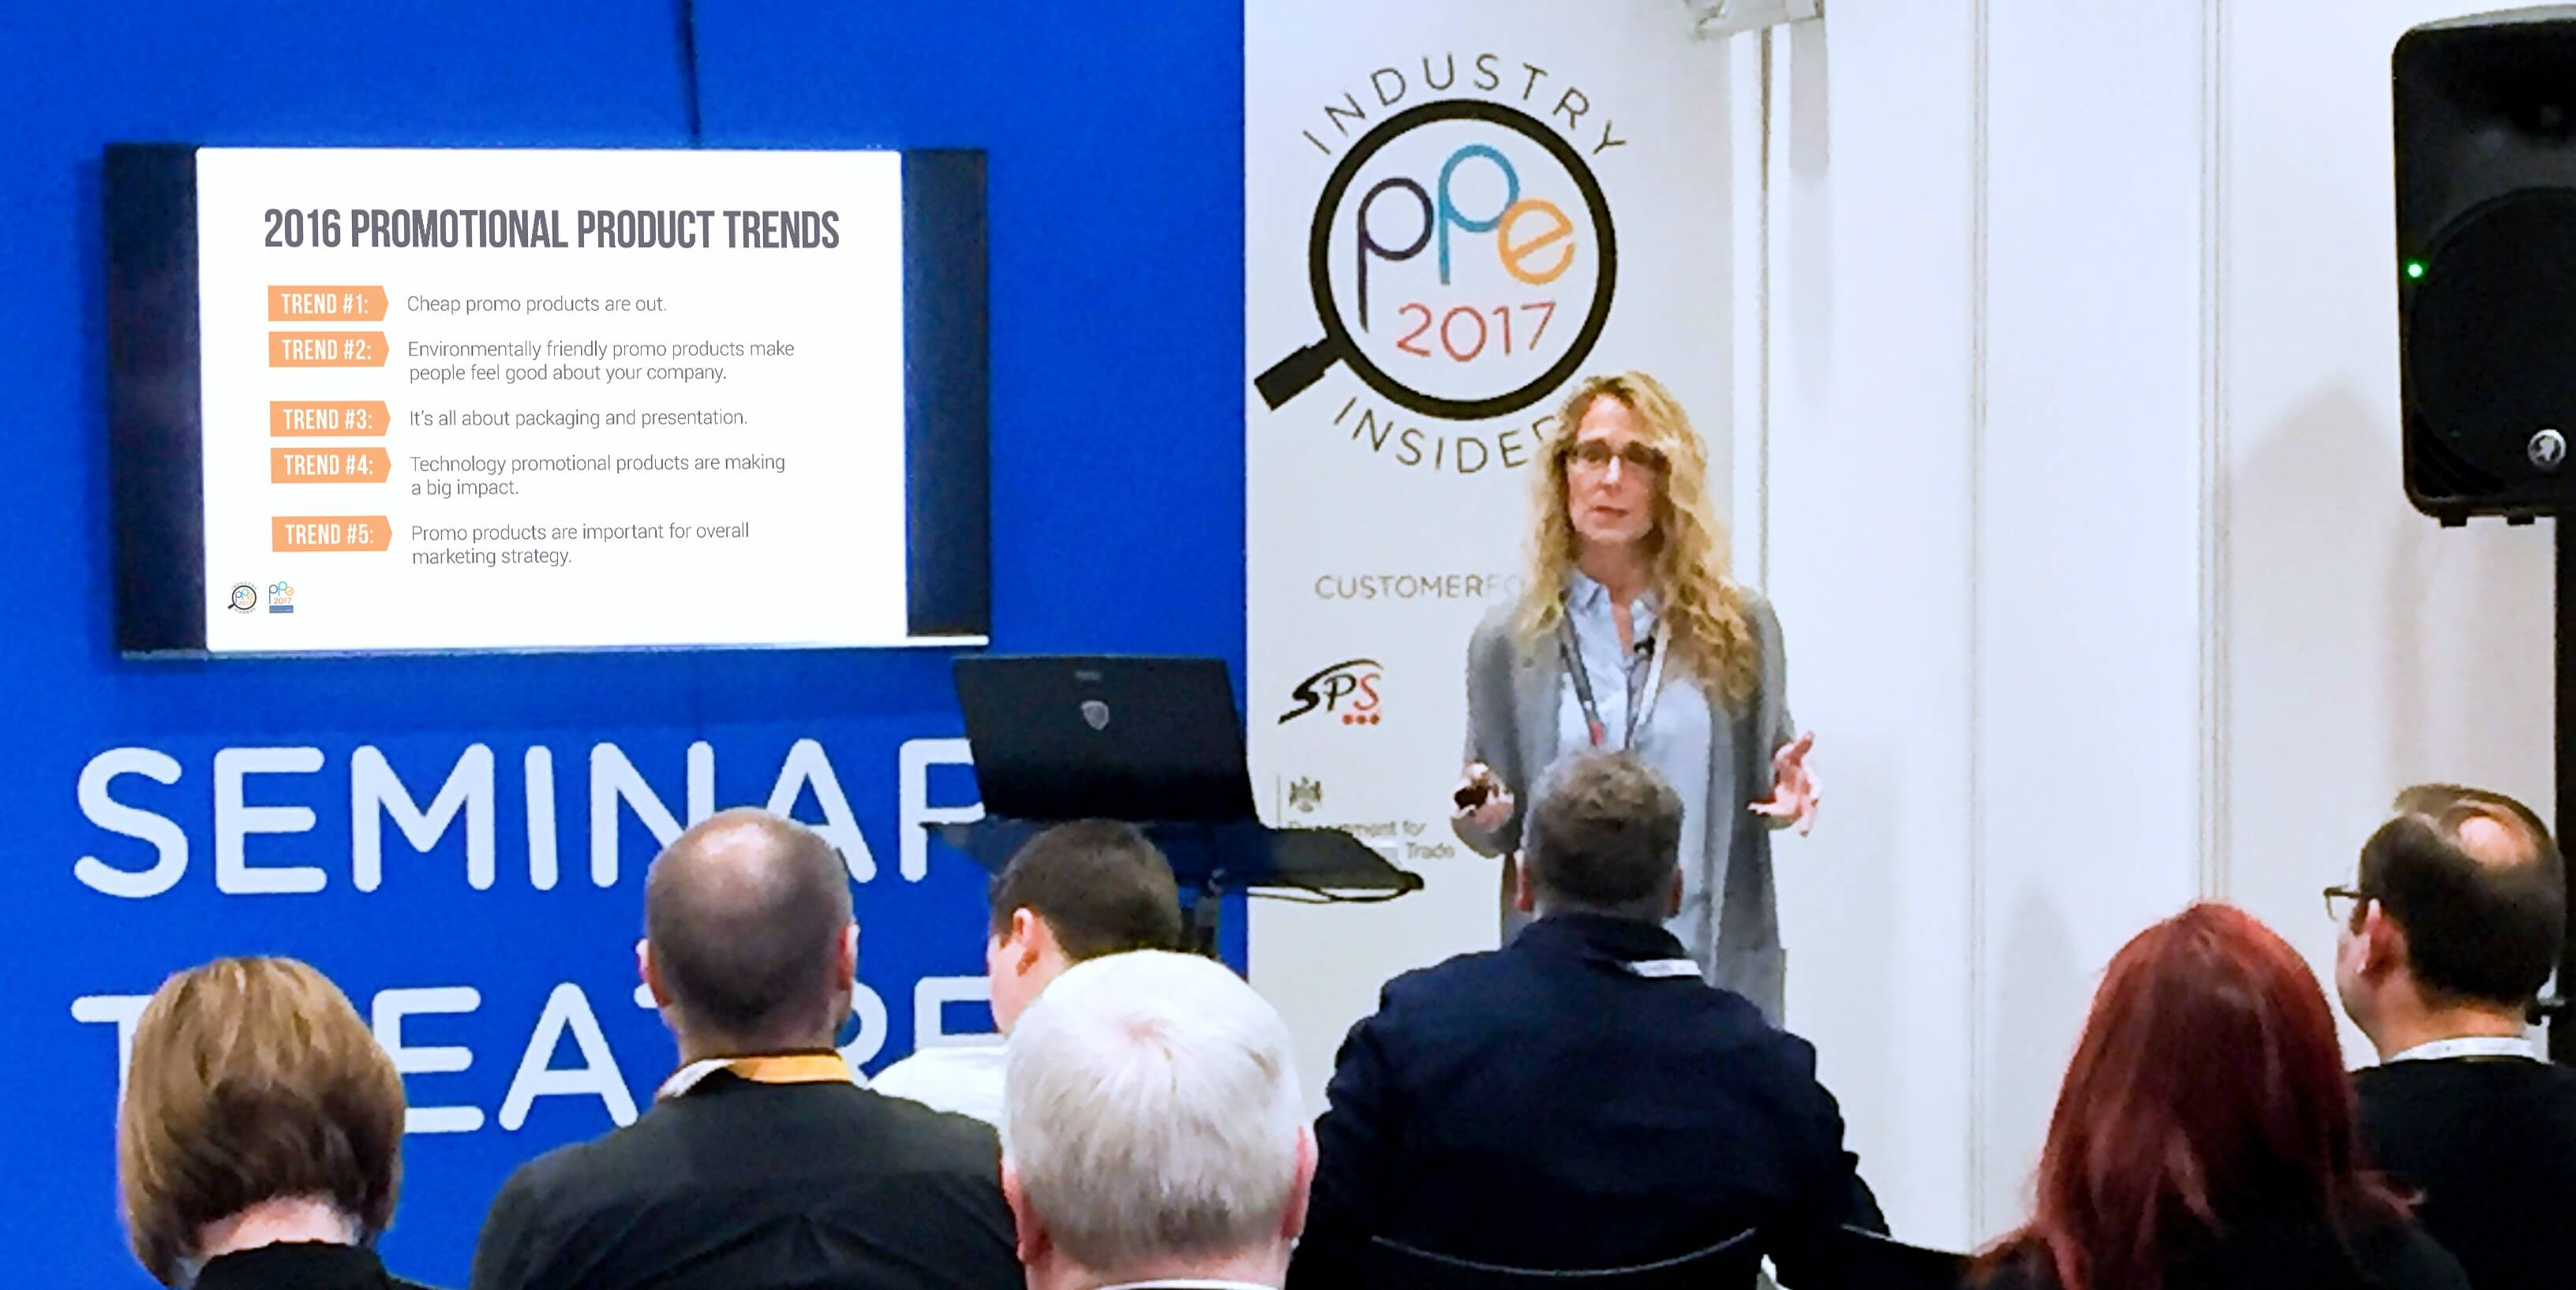 Cathy Houston speaking about promotional product trends as an Industry Insider